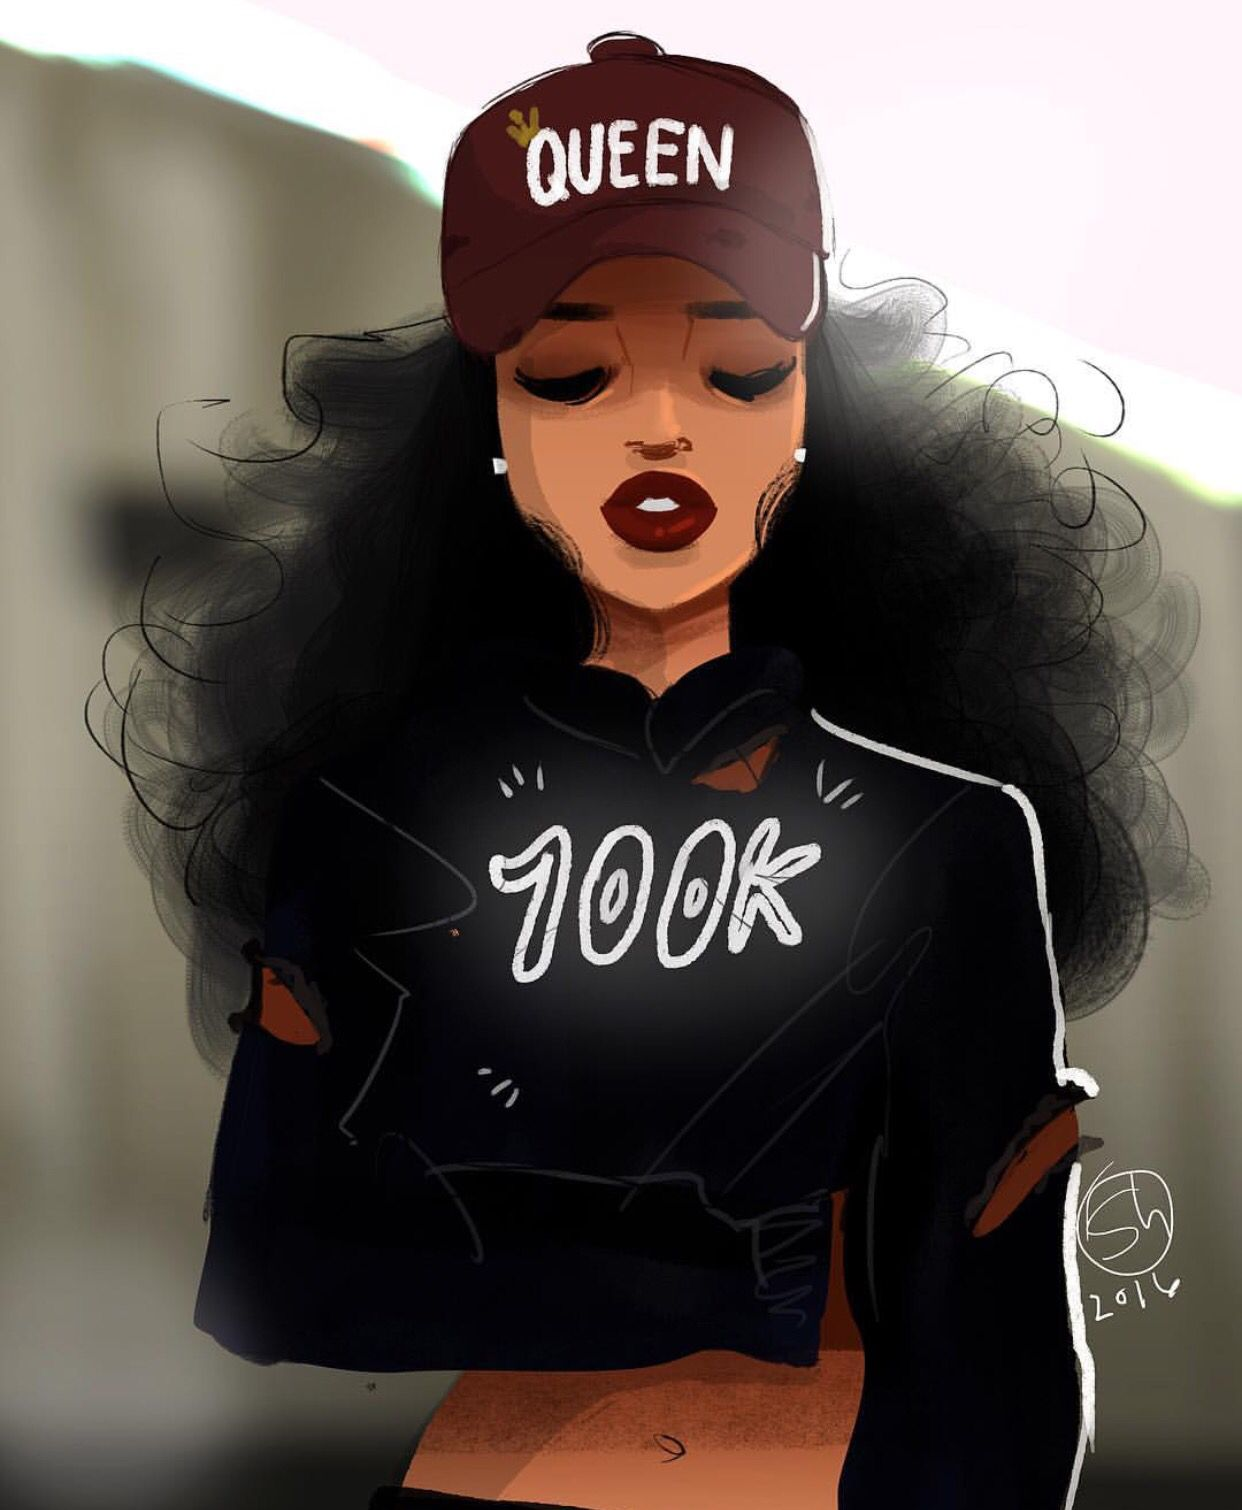 illustration315 be inspirational mz manerz being well dressed rh pinterest com  black women cartoon limiting forces